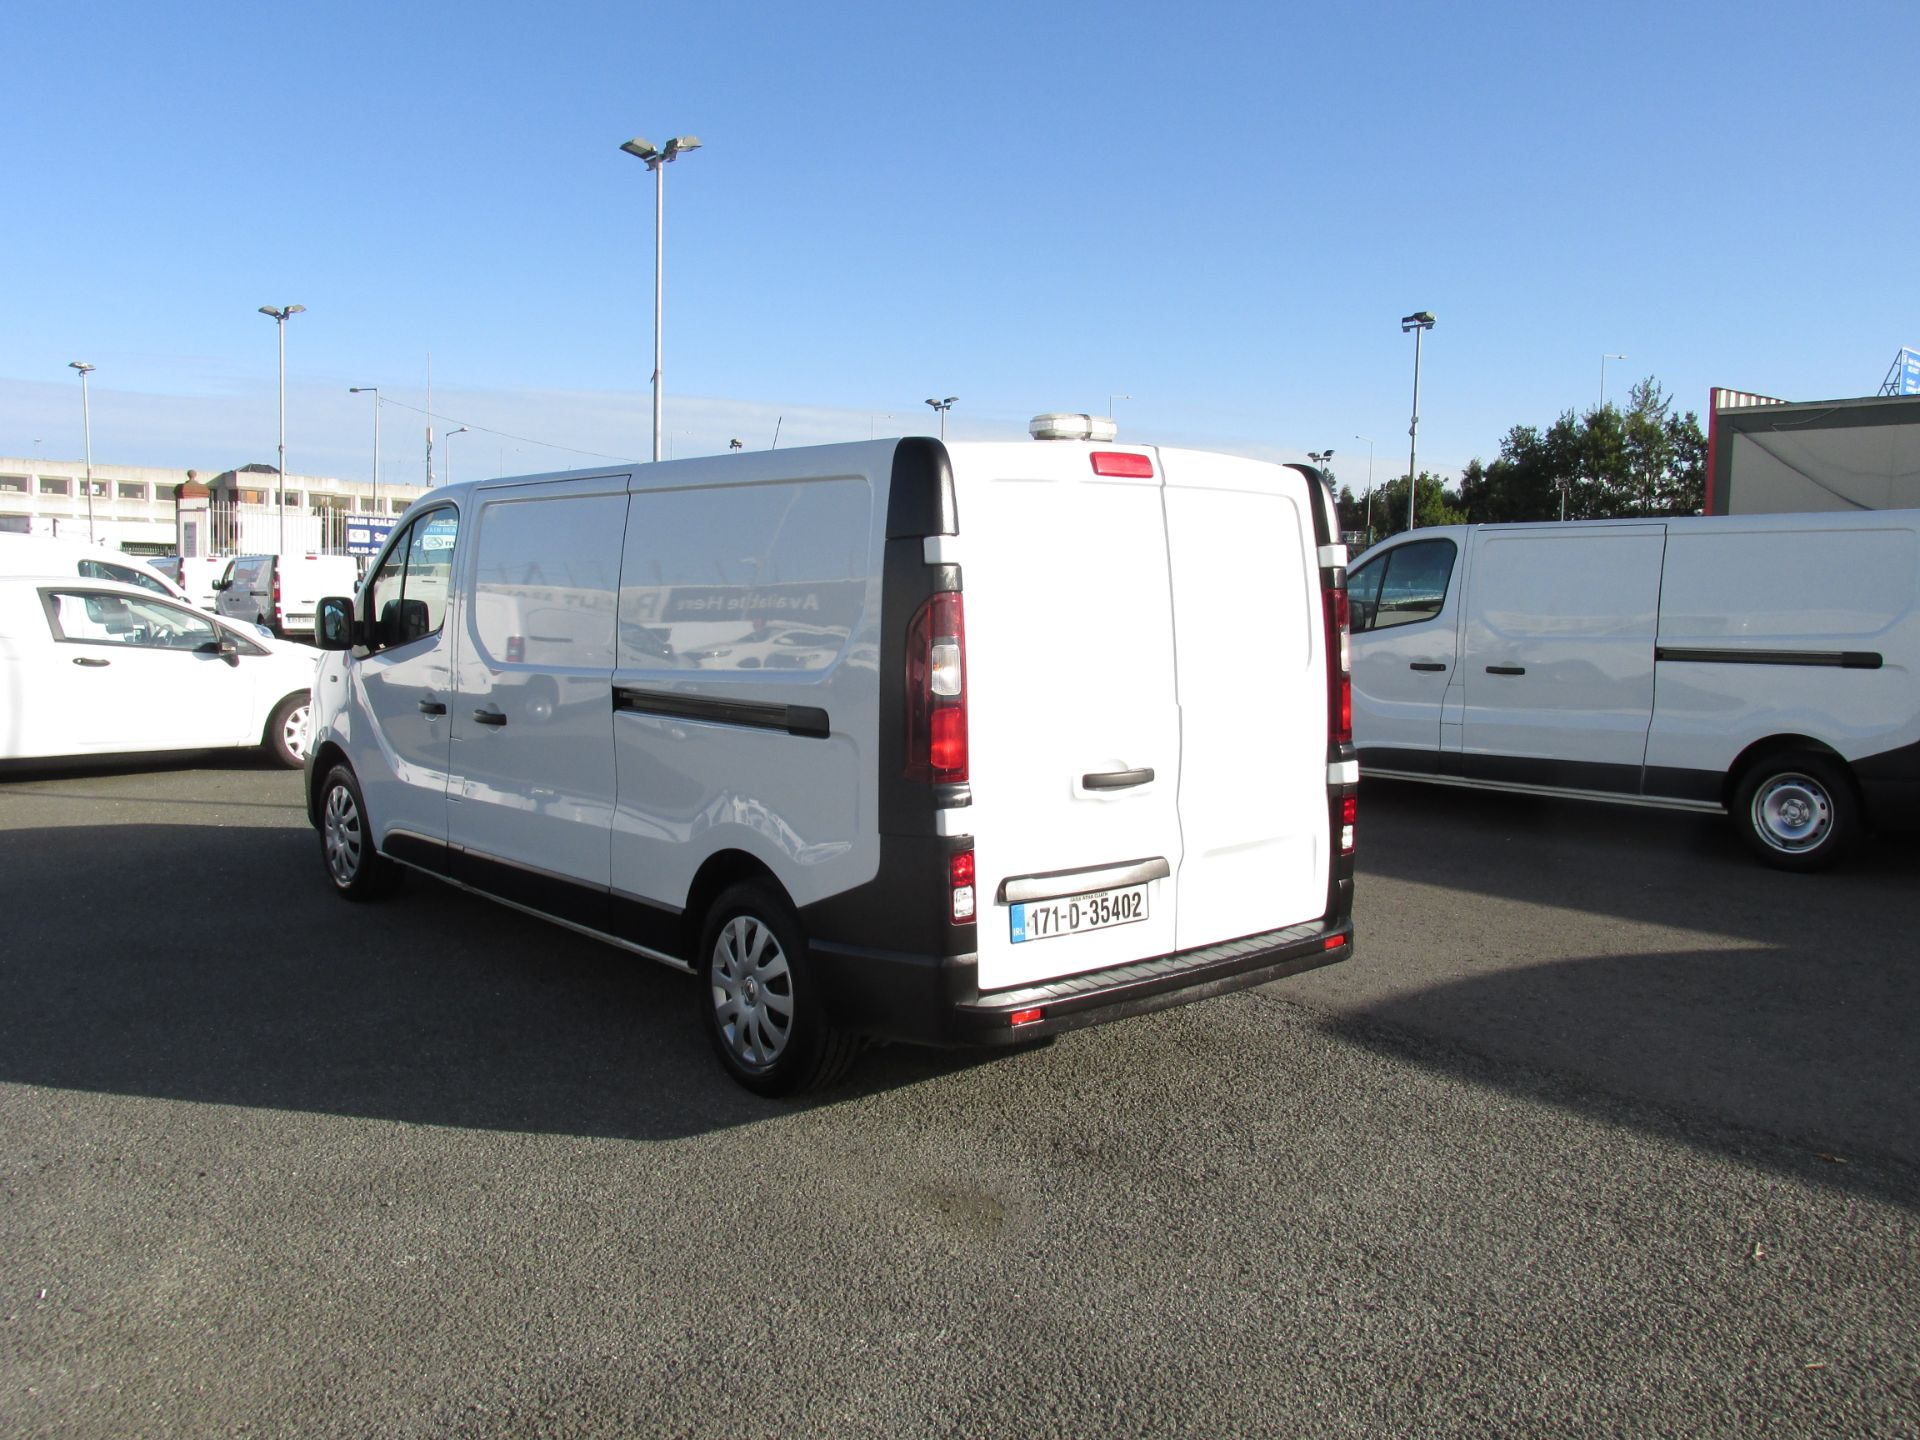 2017 Renault Trafic LL29 DCI 120 Business 3DR (171D35402) Image 5